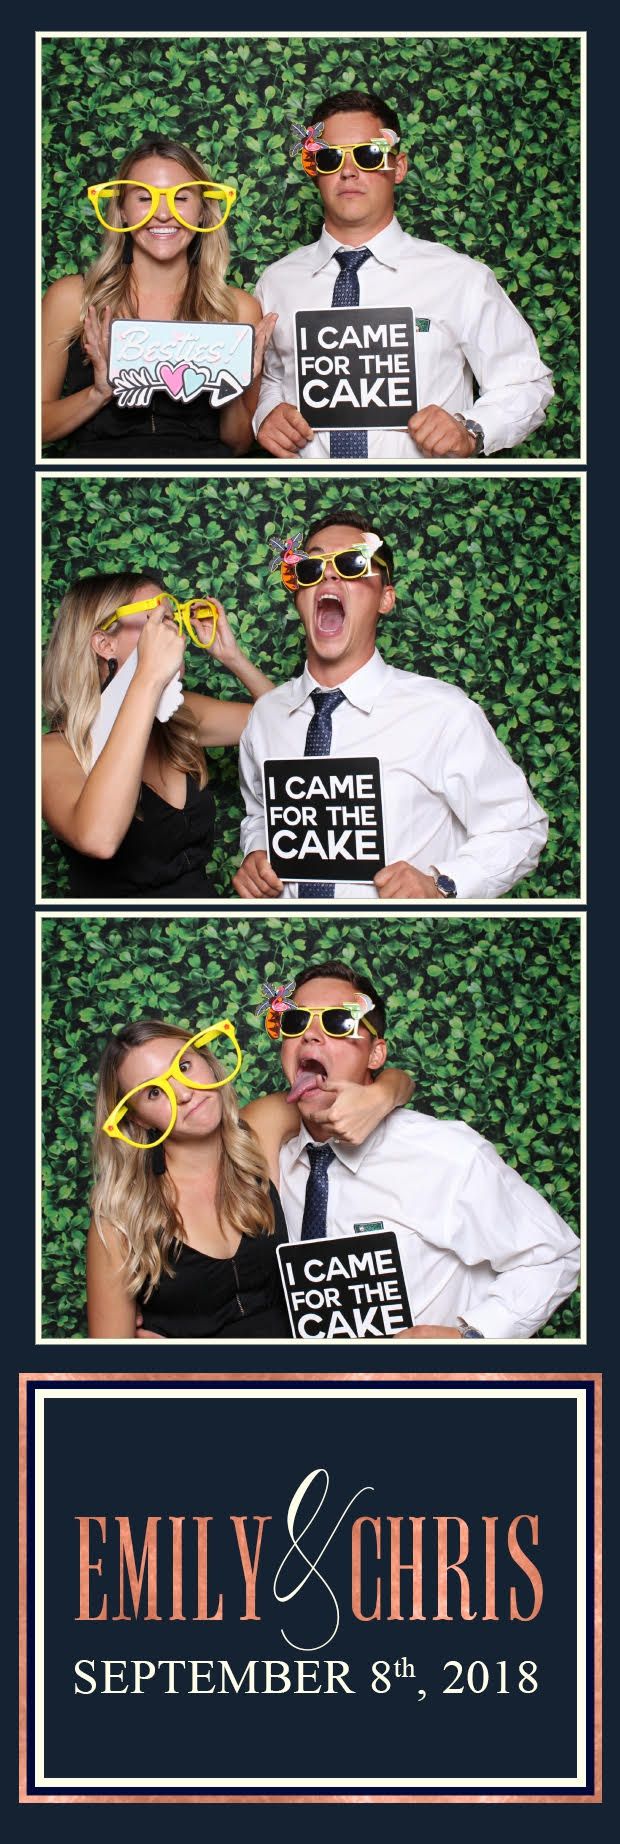 uptown wedding dallas photo booth.jpg